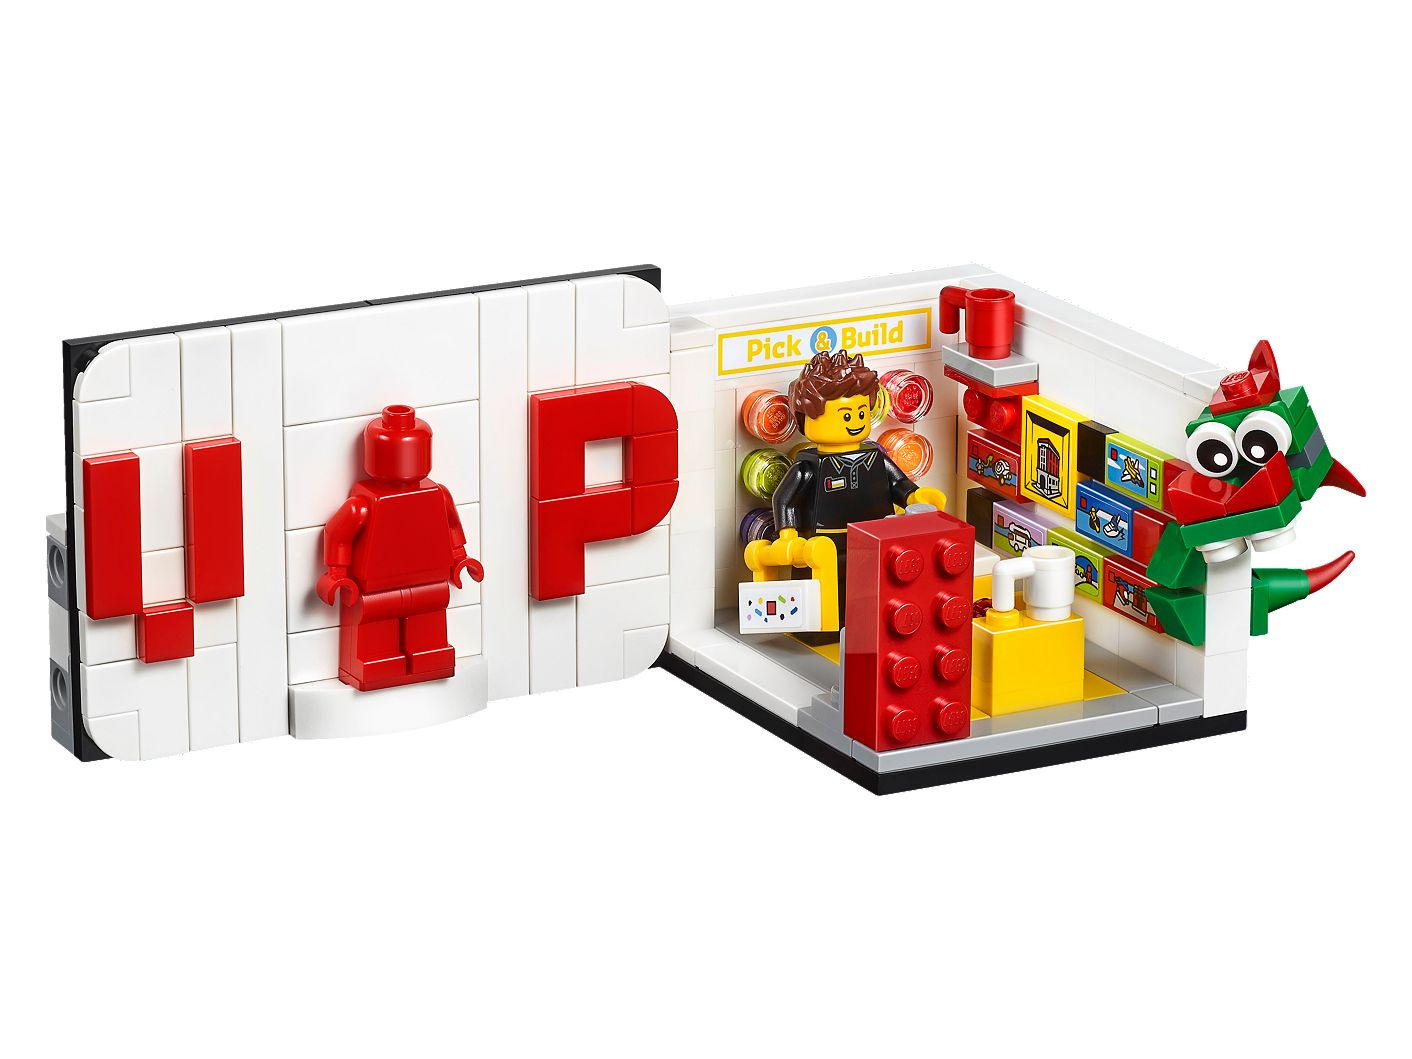 LEGO® Iconic VIP Set 40178 | UNKNOWN | Buy online at the Official LEGO®  Shop US